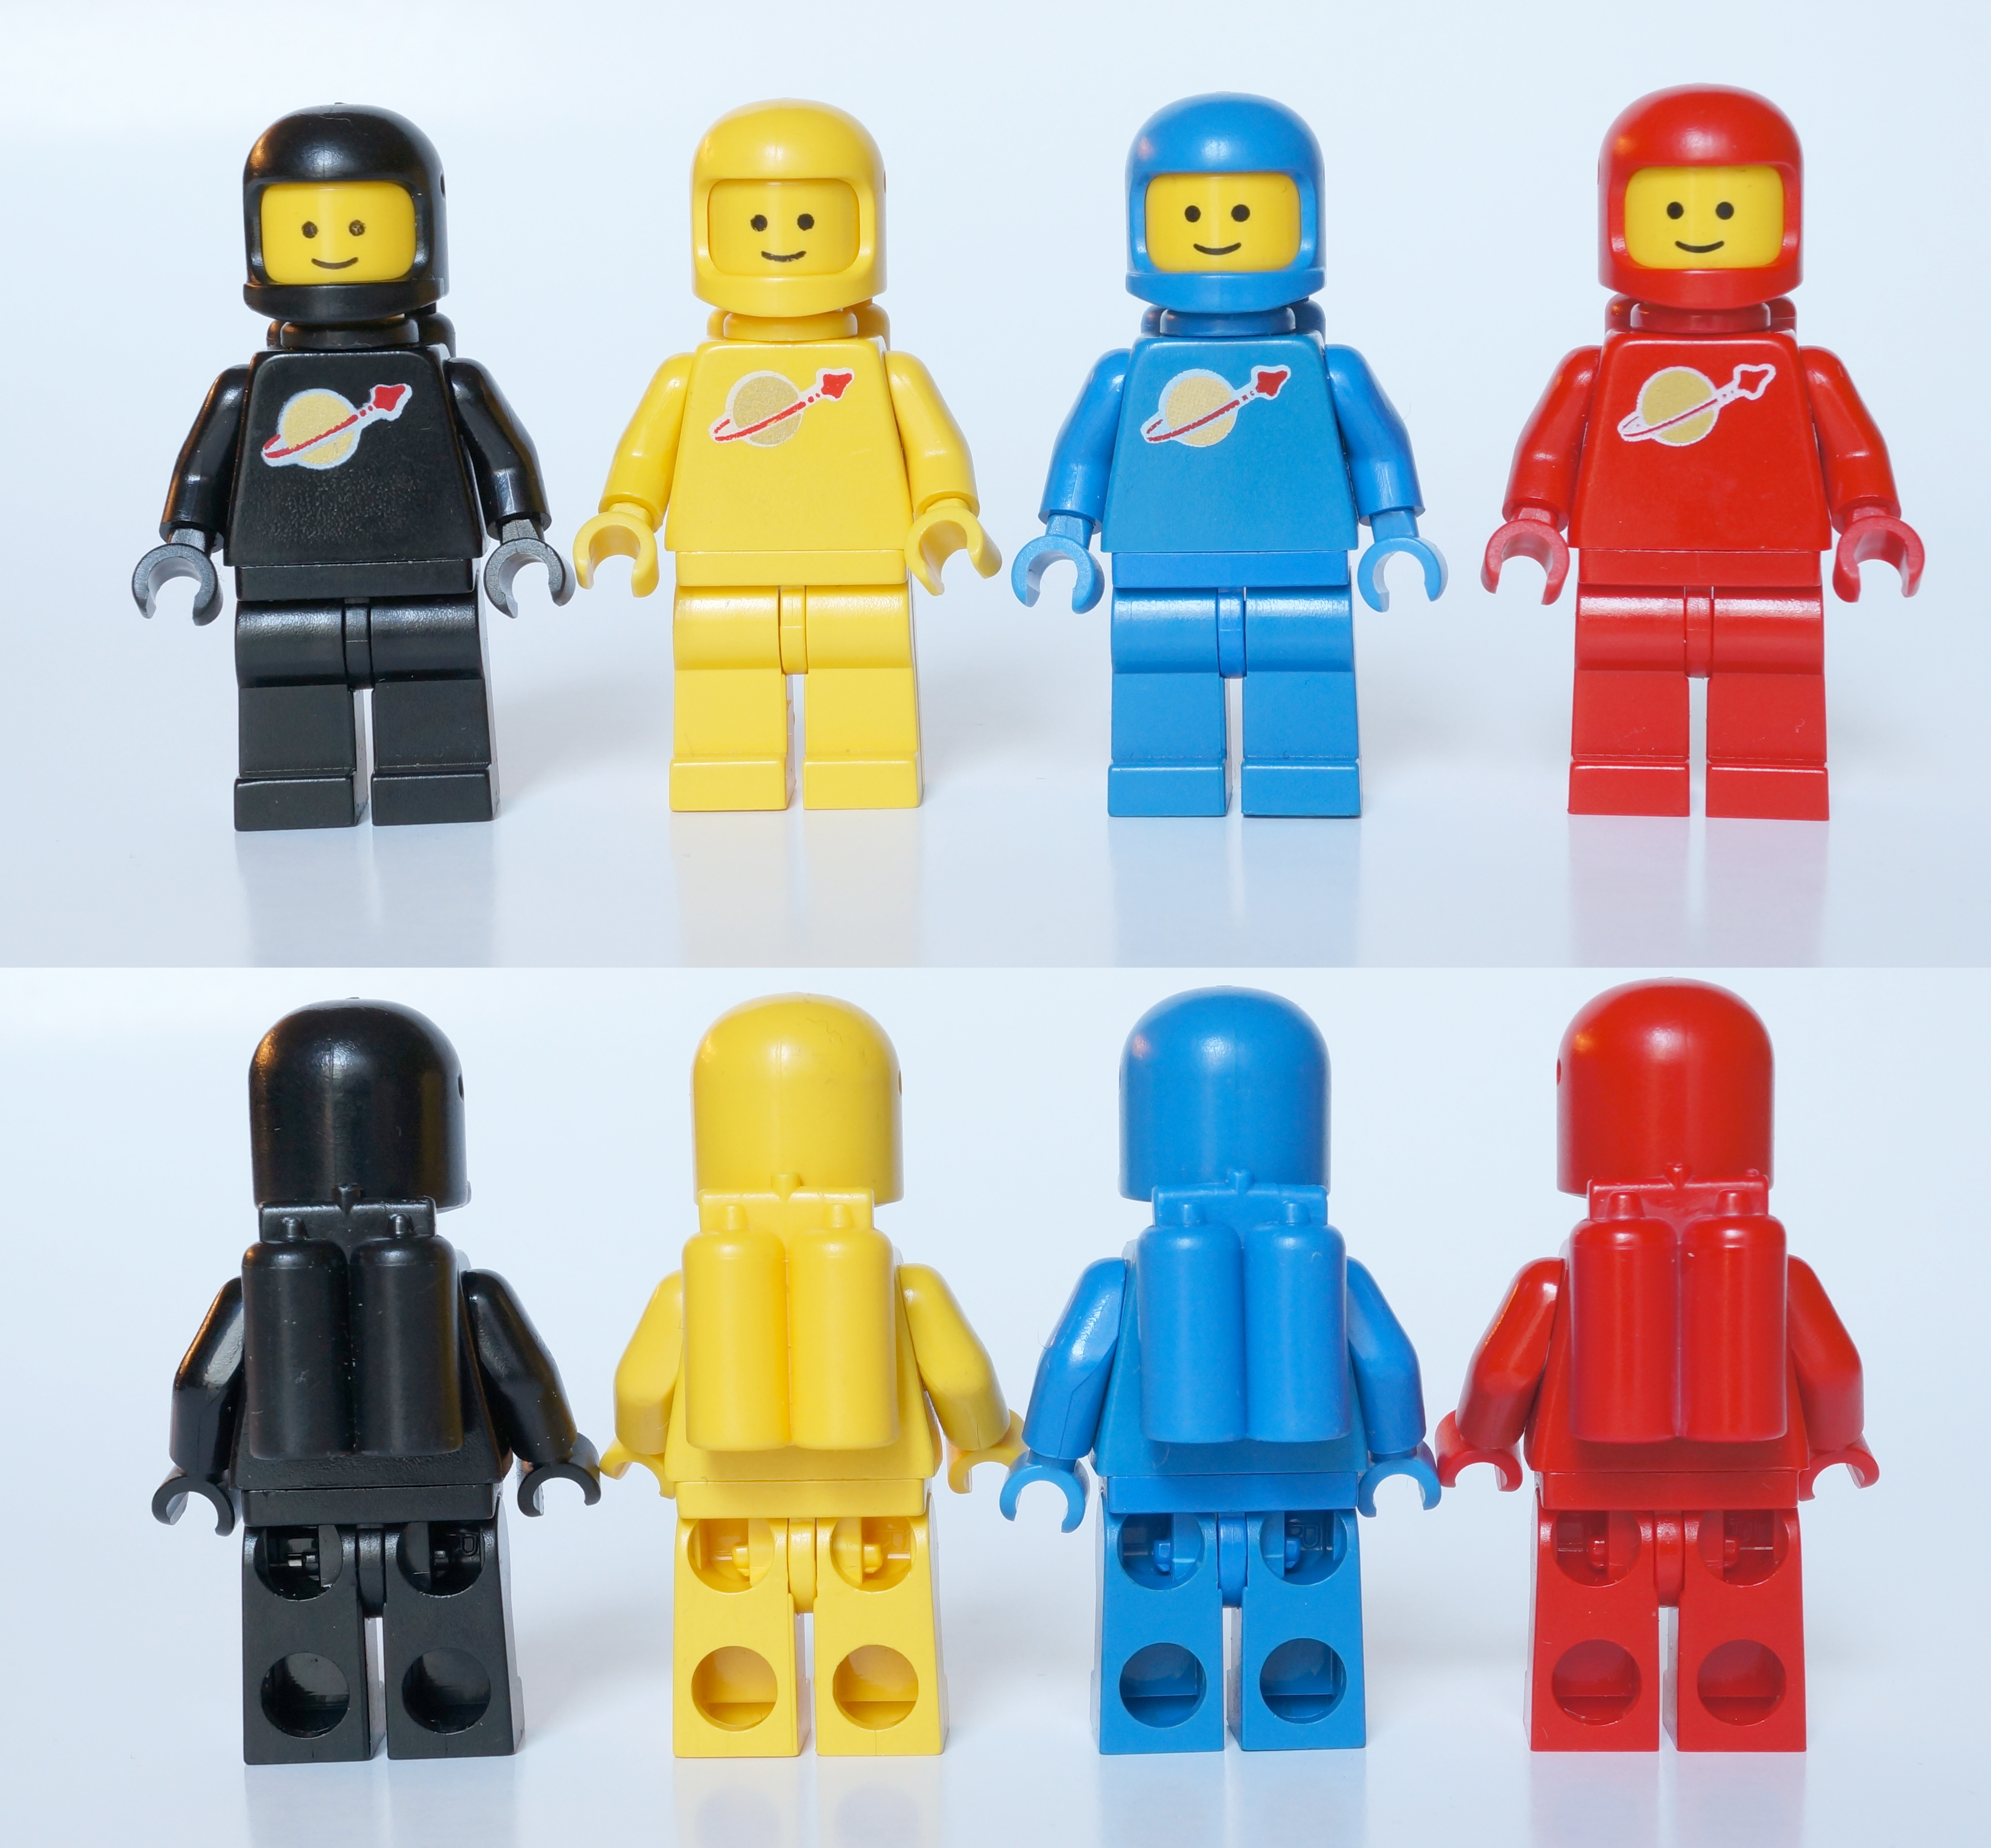 minifig_space_classic.jpg